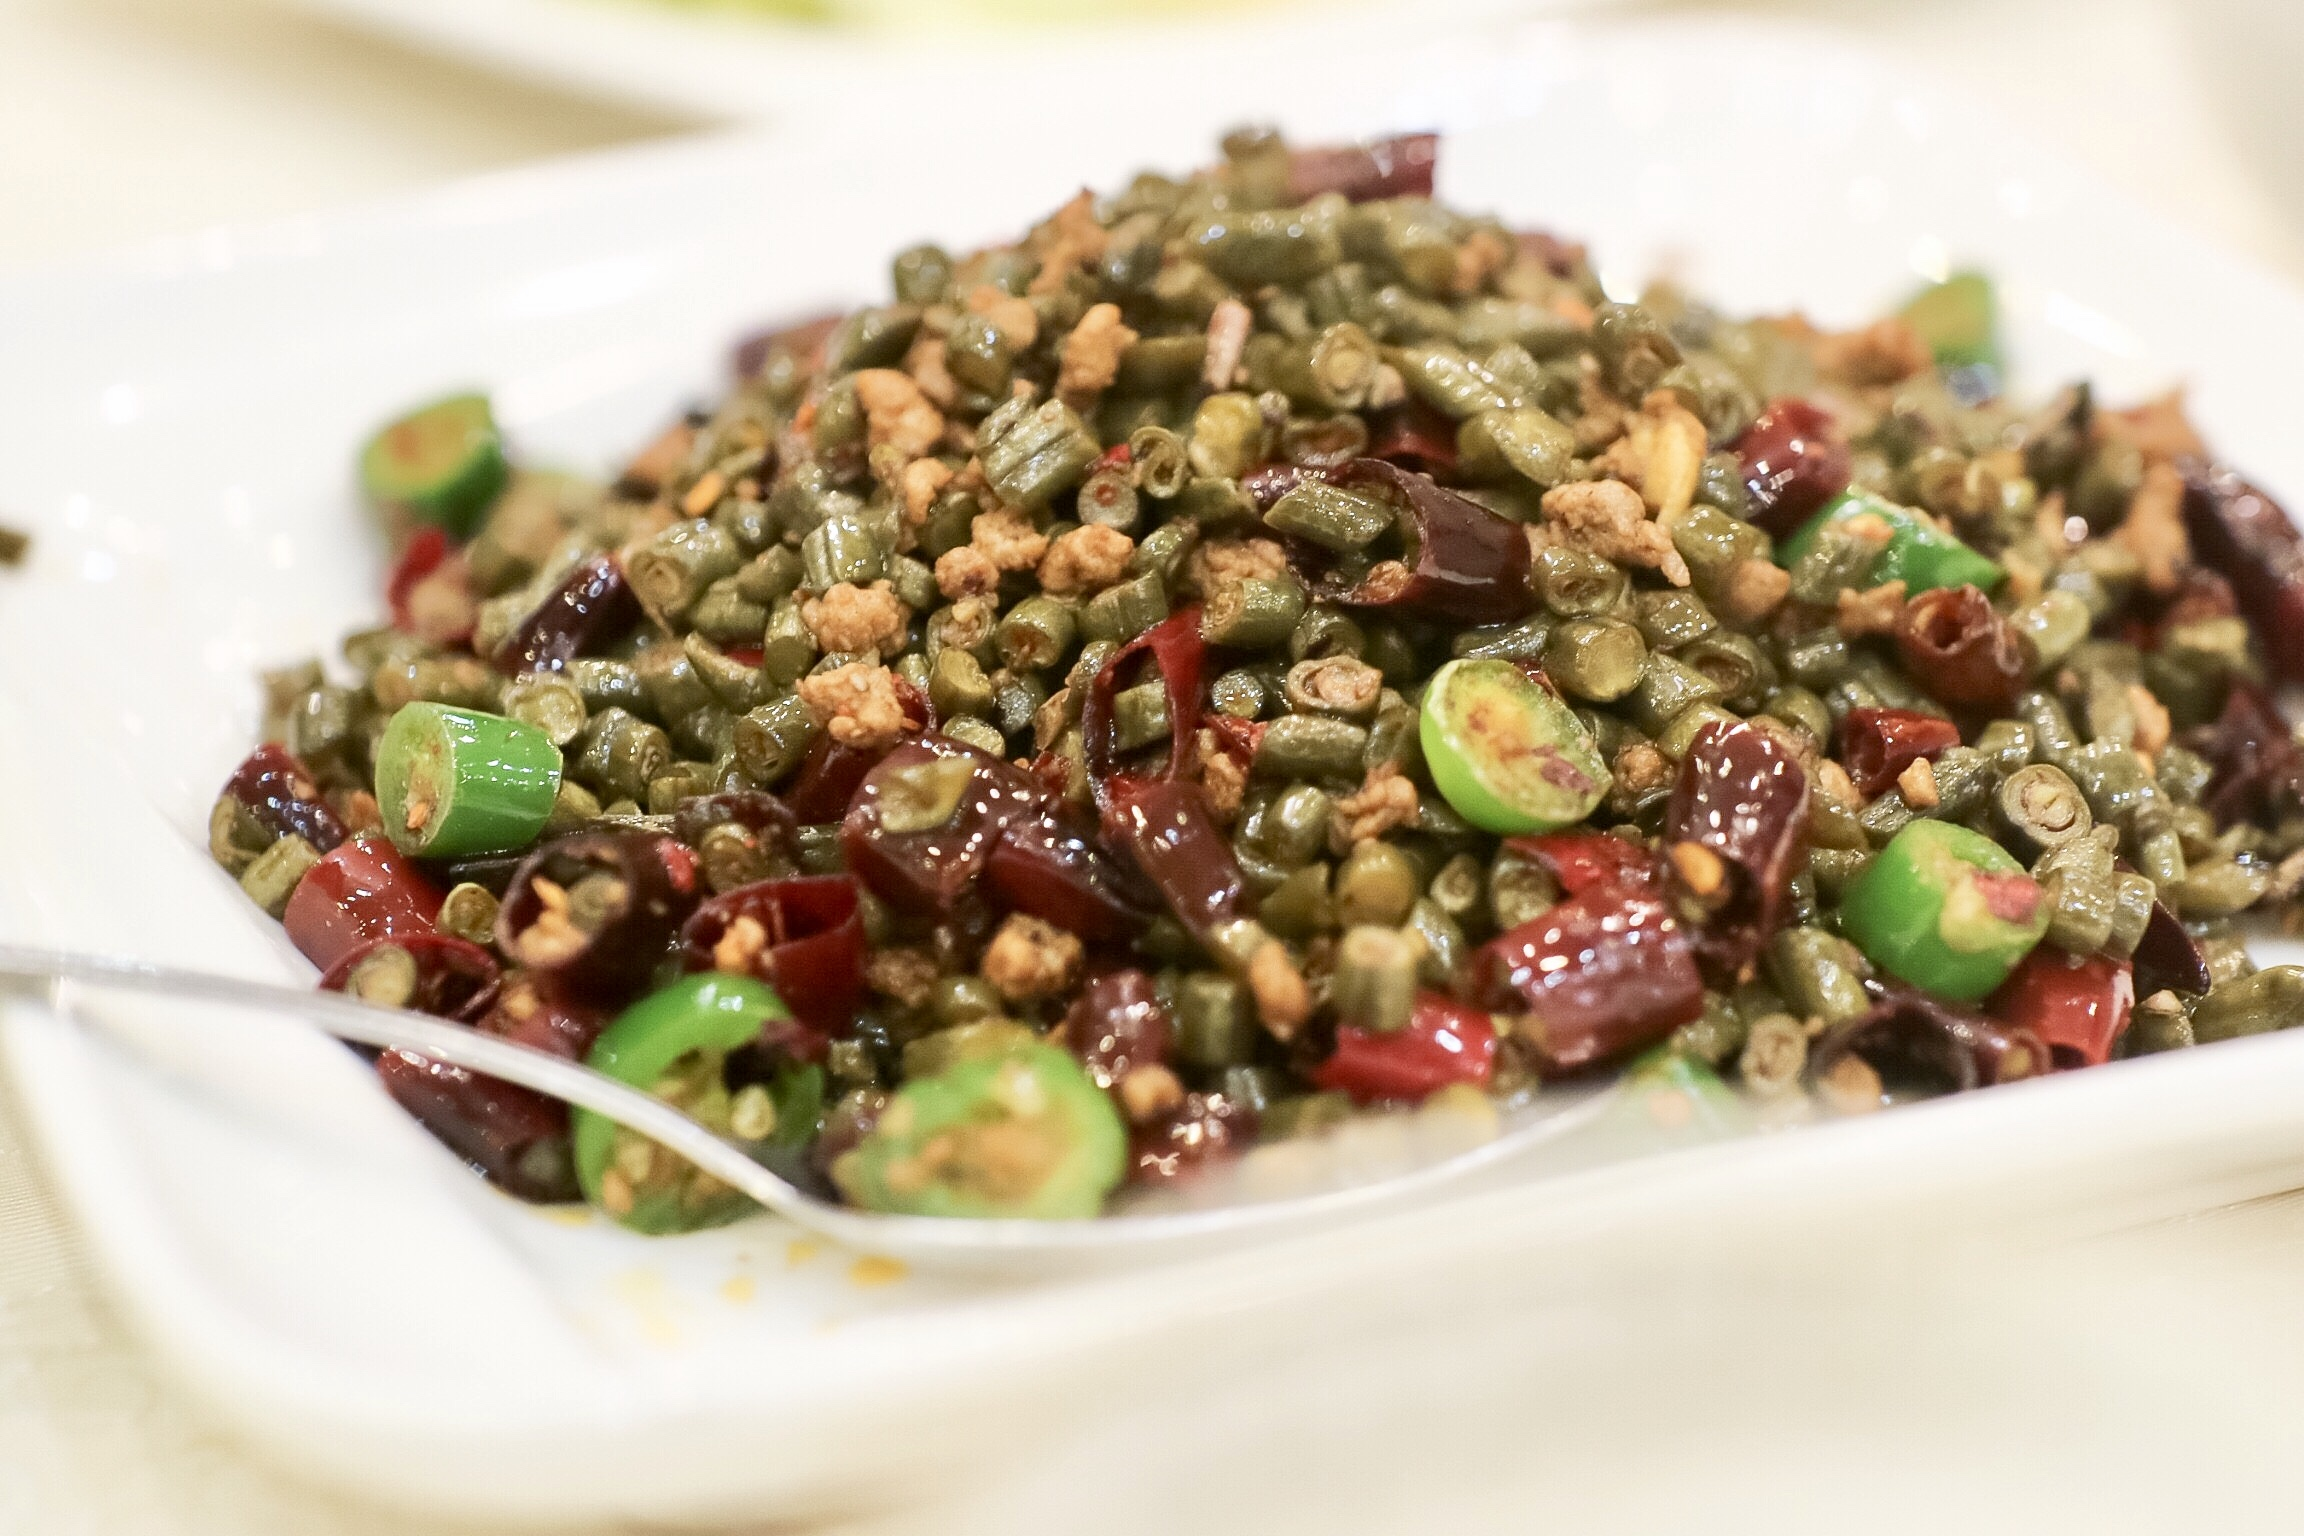 Pickled Long Beans with Ground Pork Stir Fry